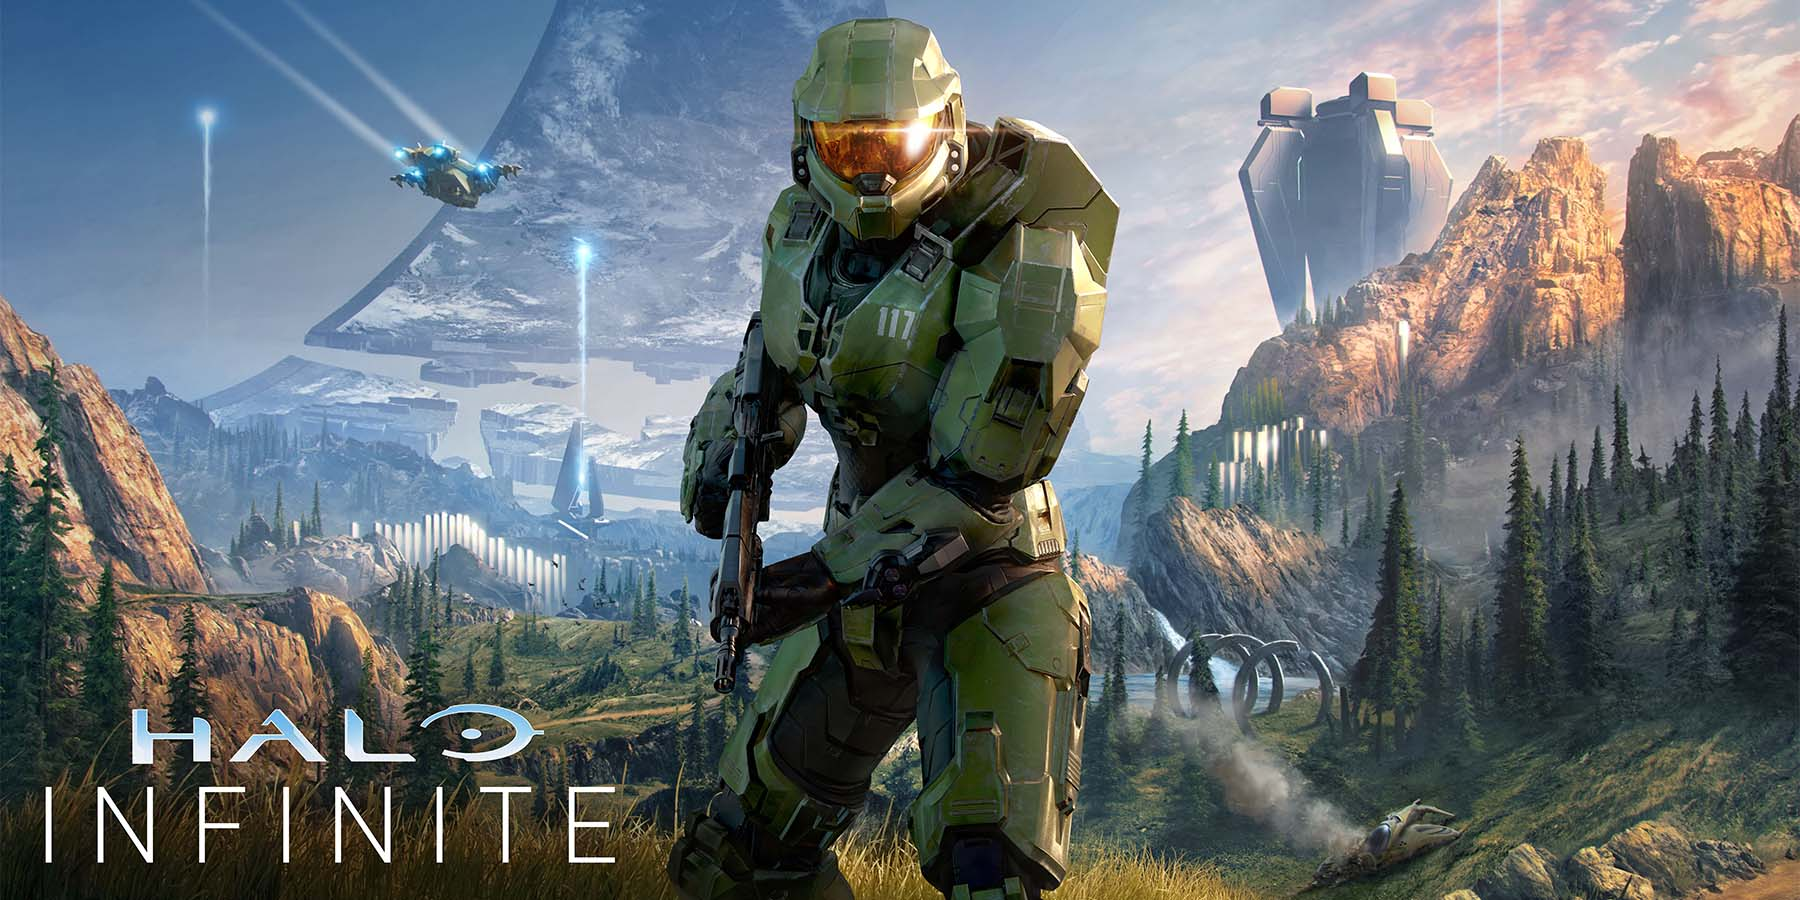 Xbox Brand Strategy for first party titles - Halo Infinite